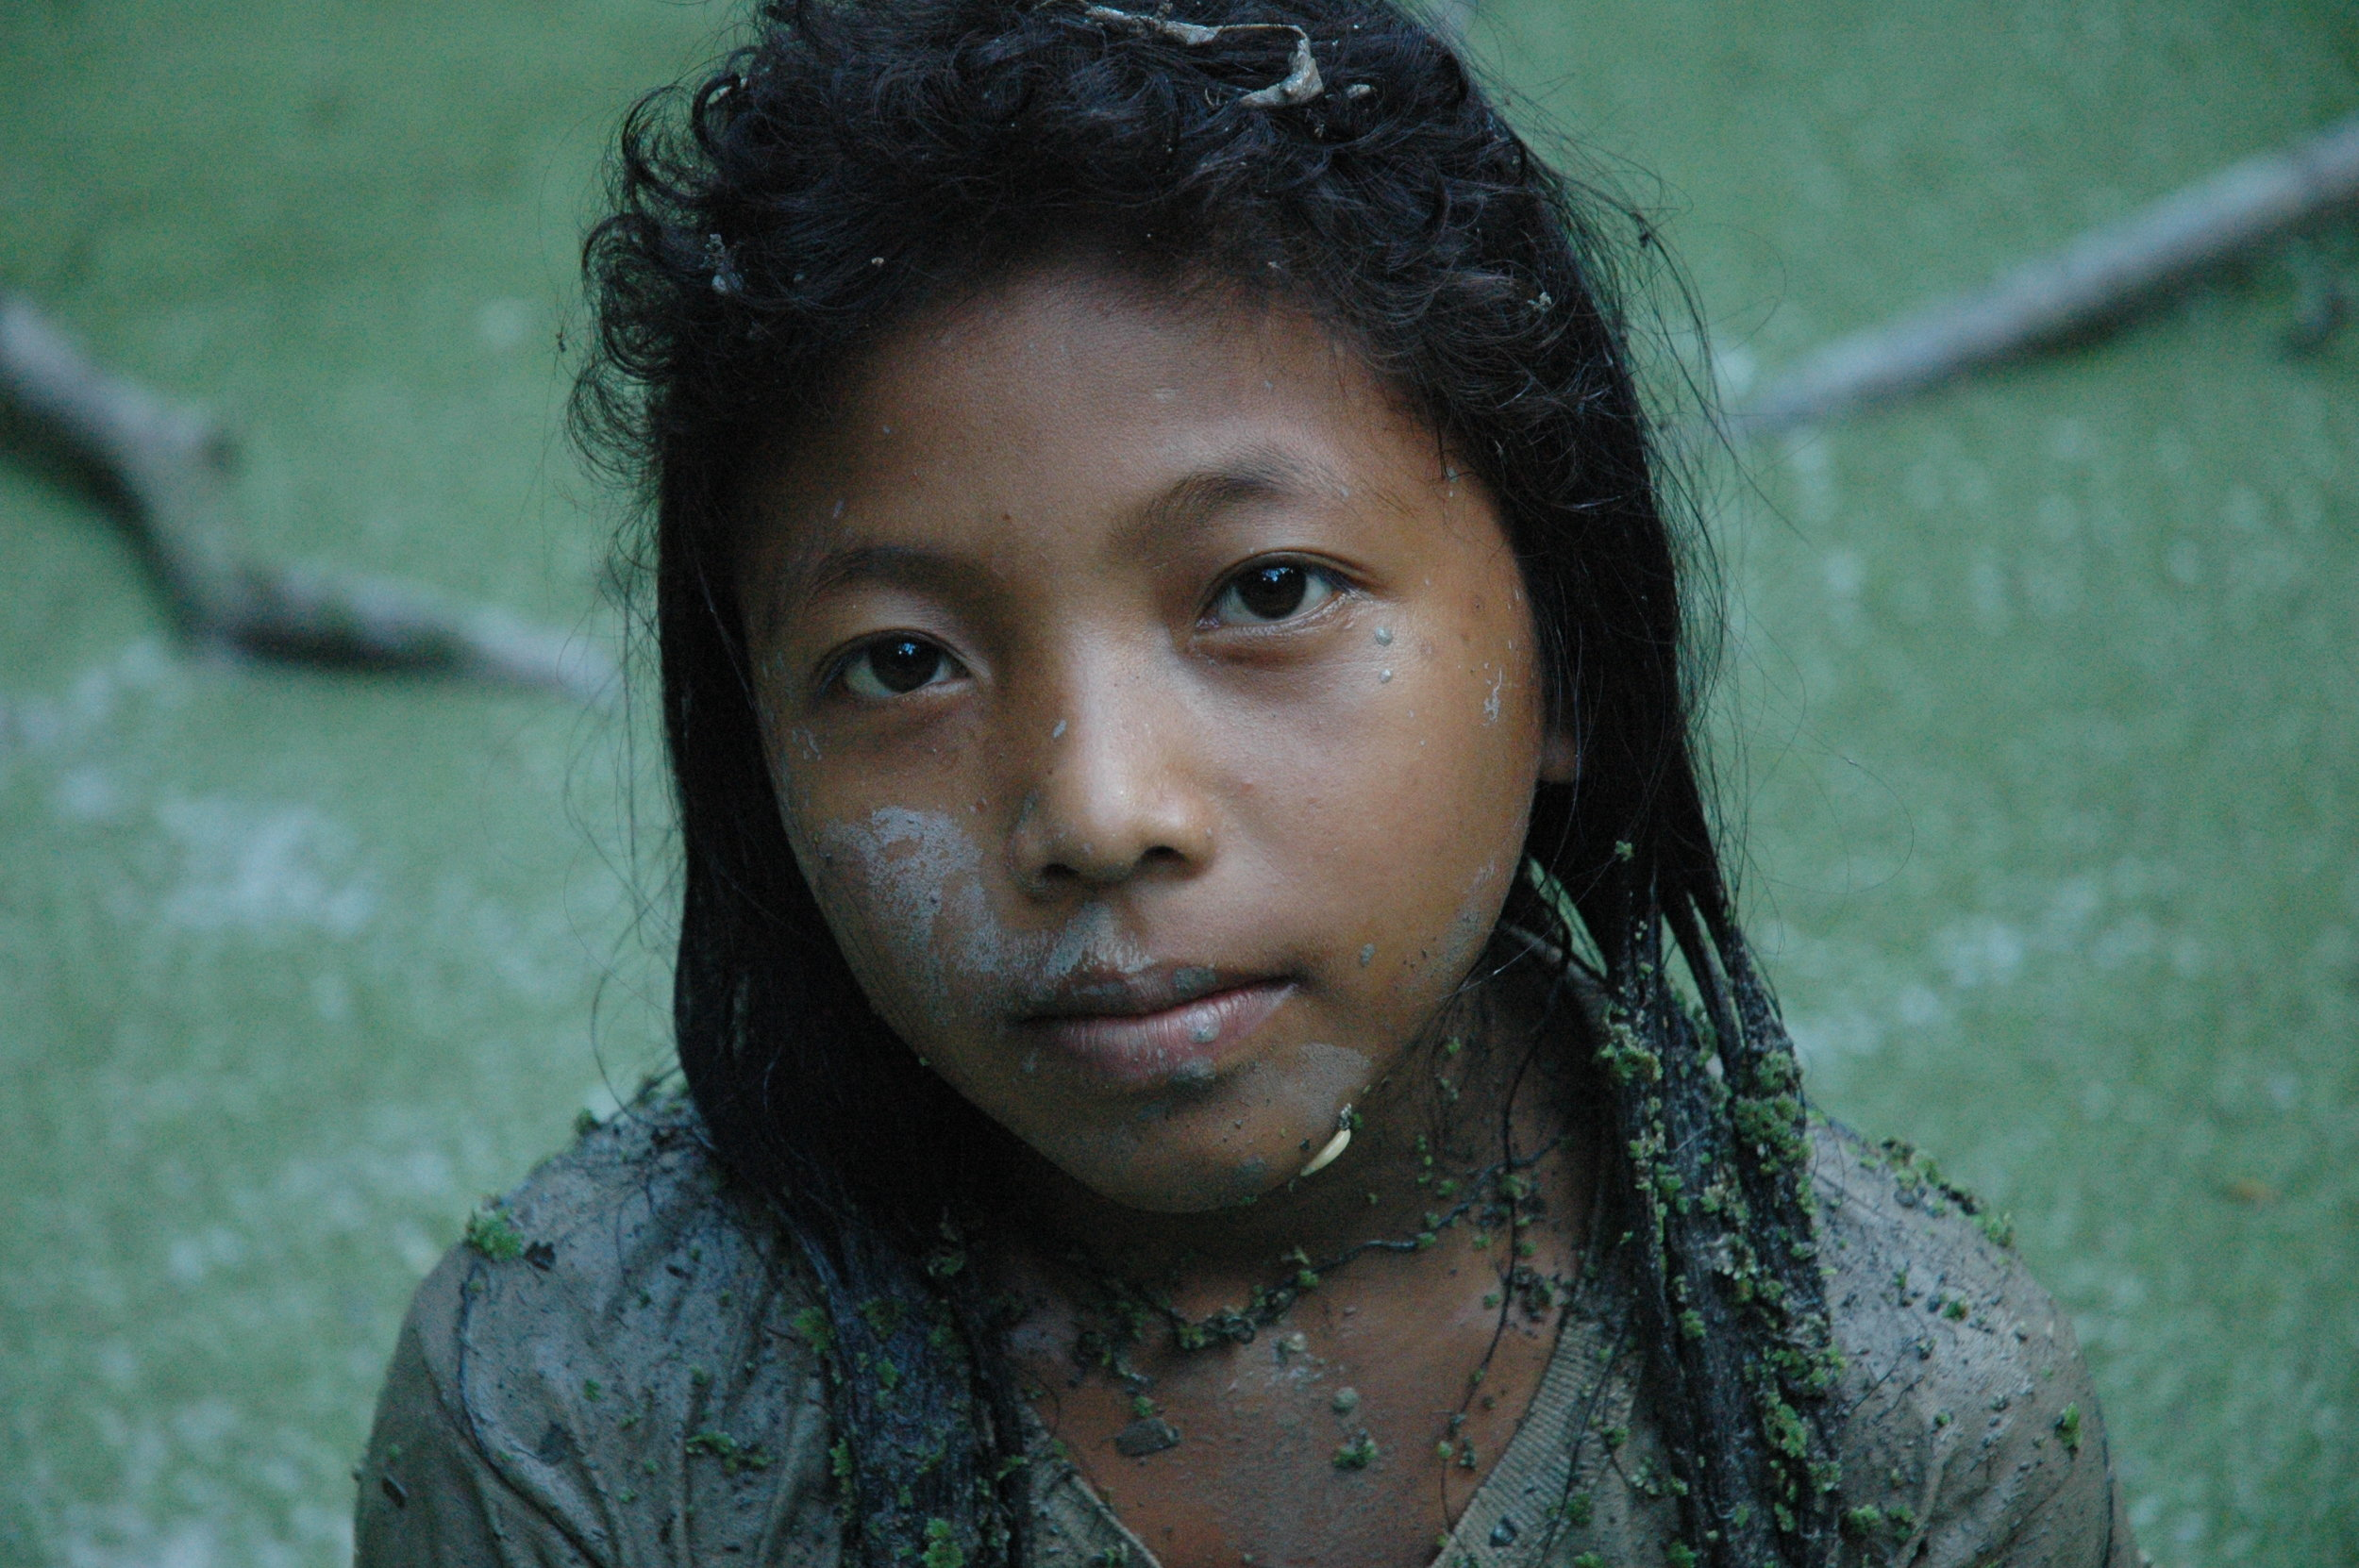 A Cashinahua girl on the River Curanja, Peru. Credit: David Hill/Survival